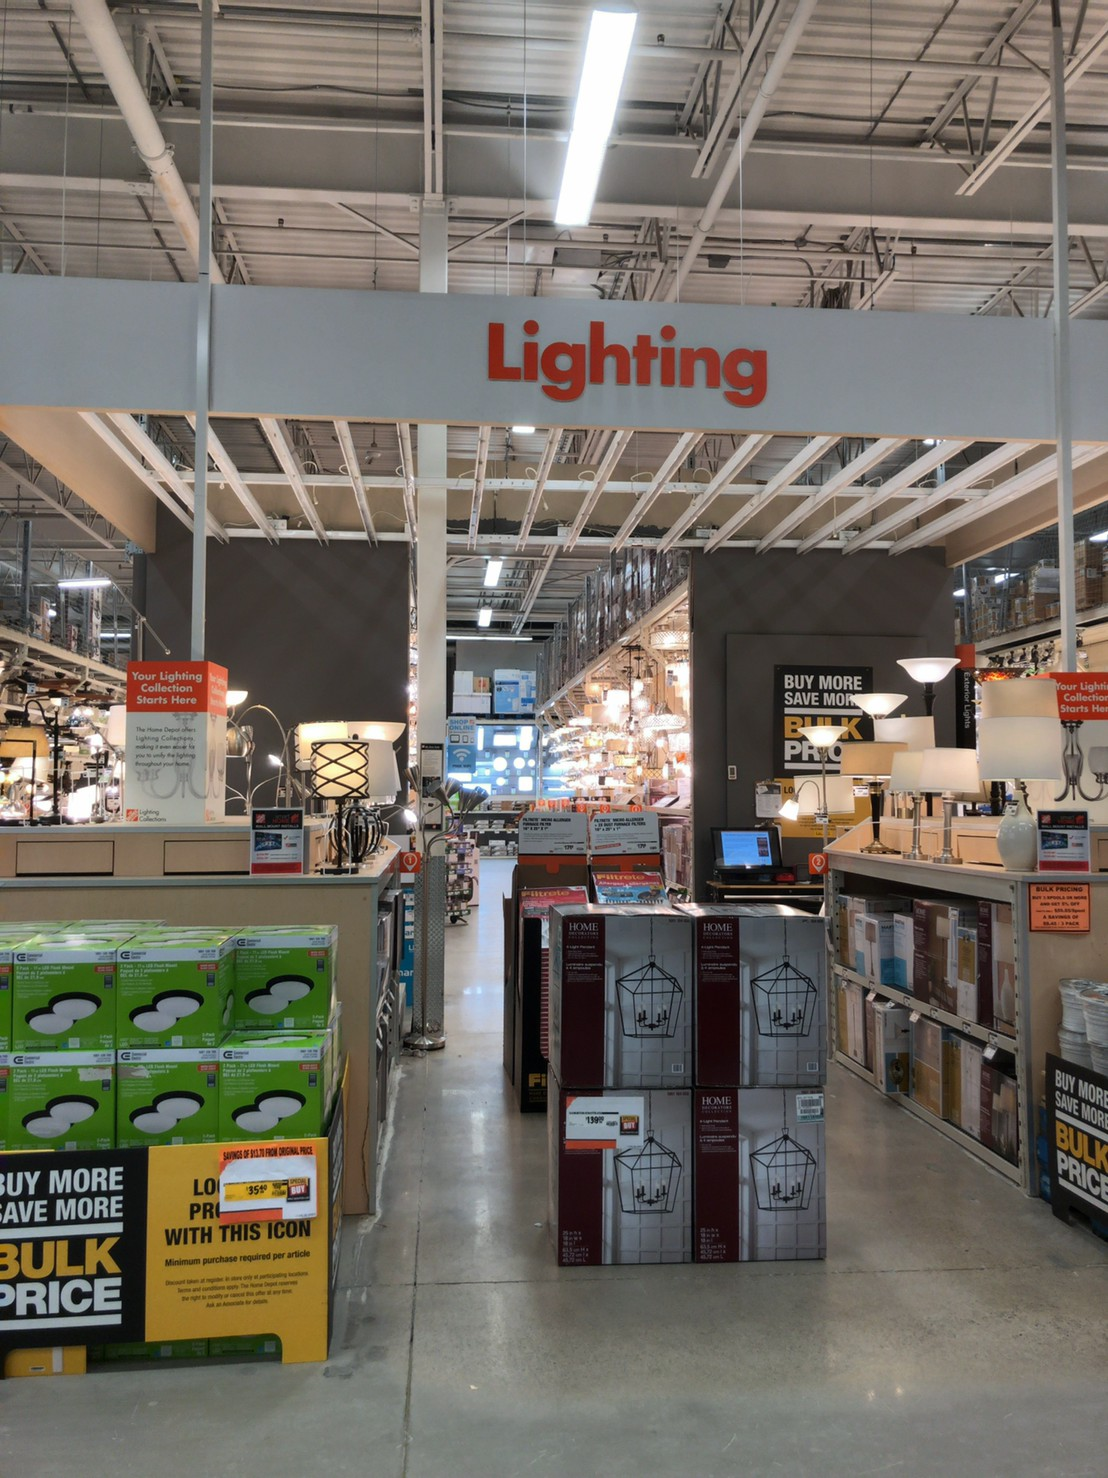 The home depot 電気 ①